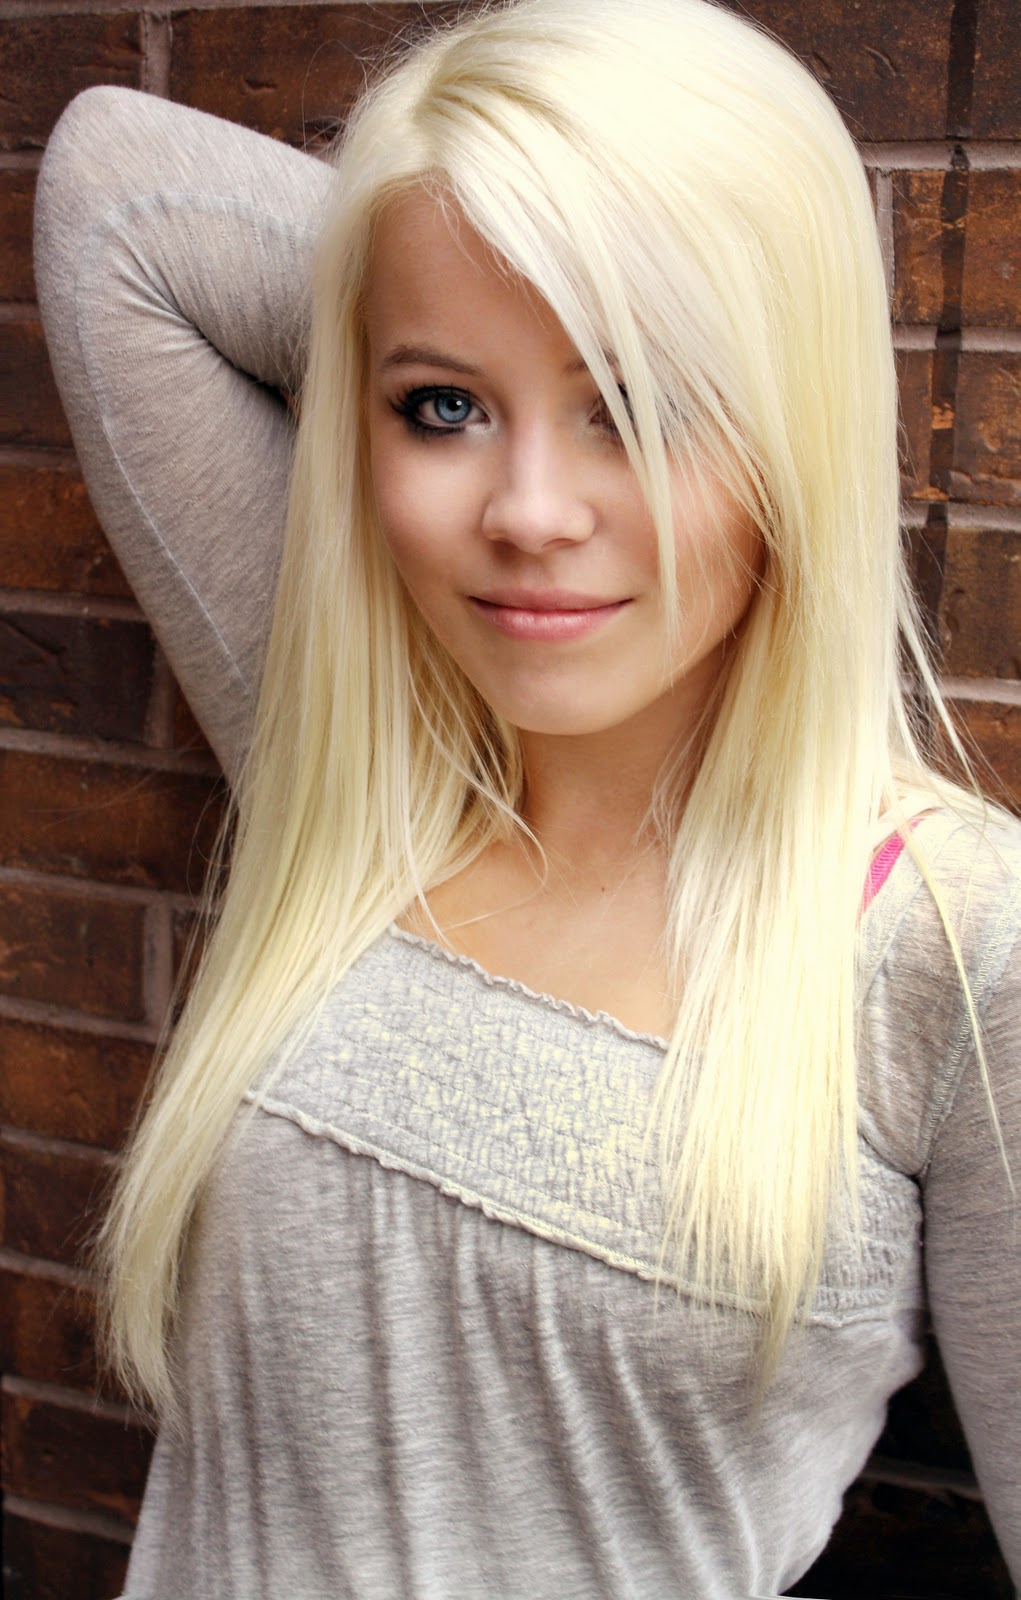 Blonde Ombre Hair Color Hot Girls Wallpaper